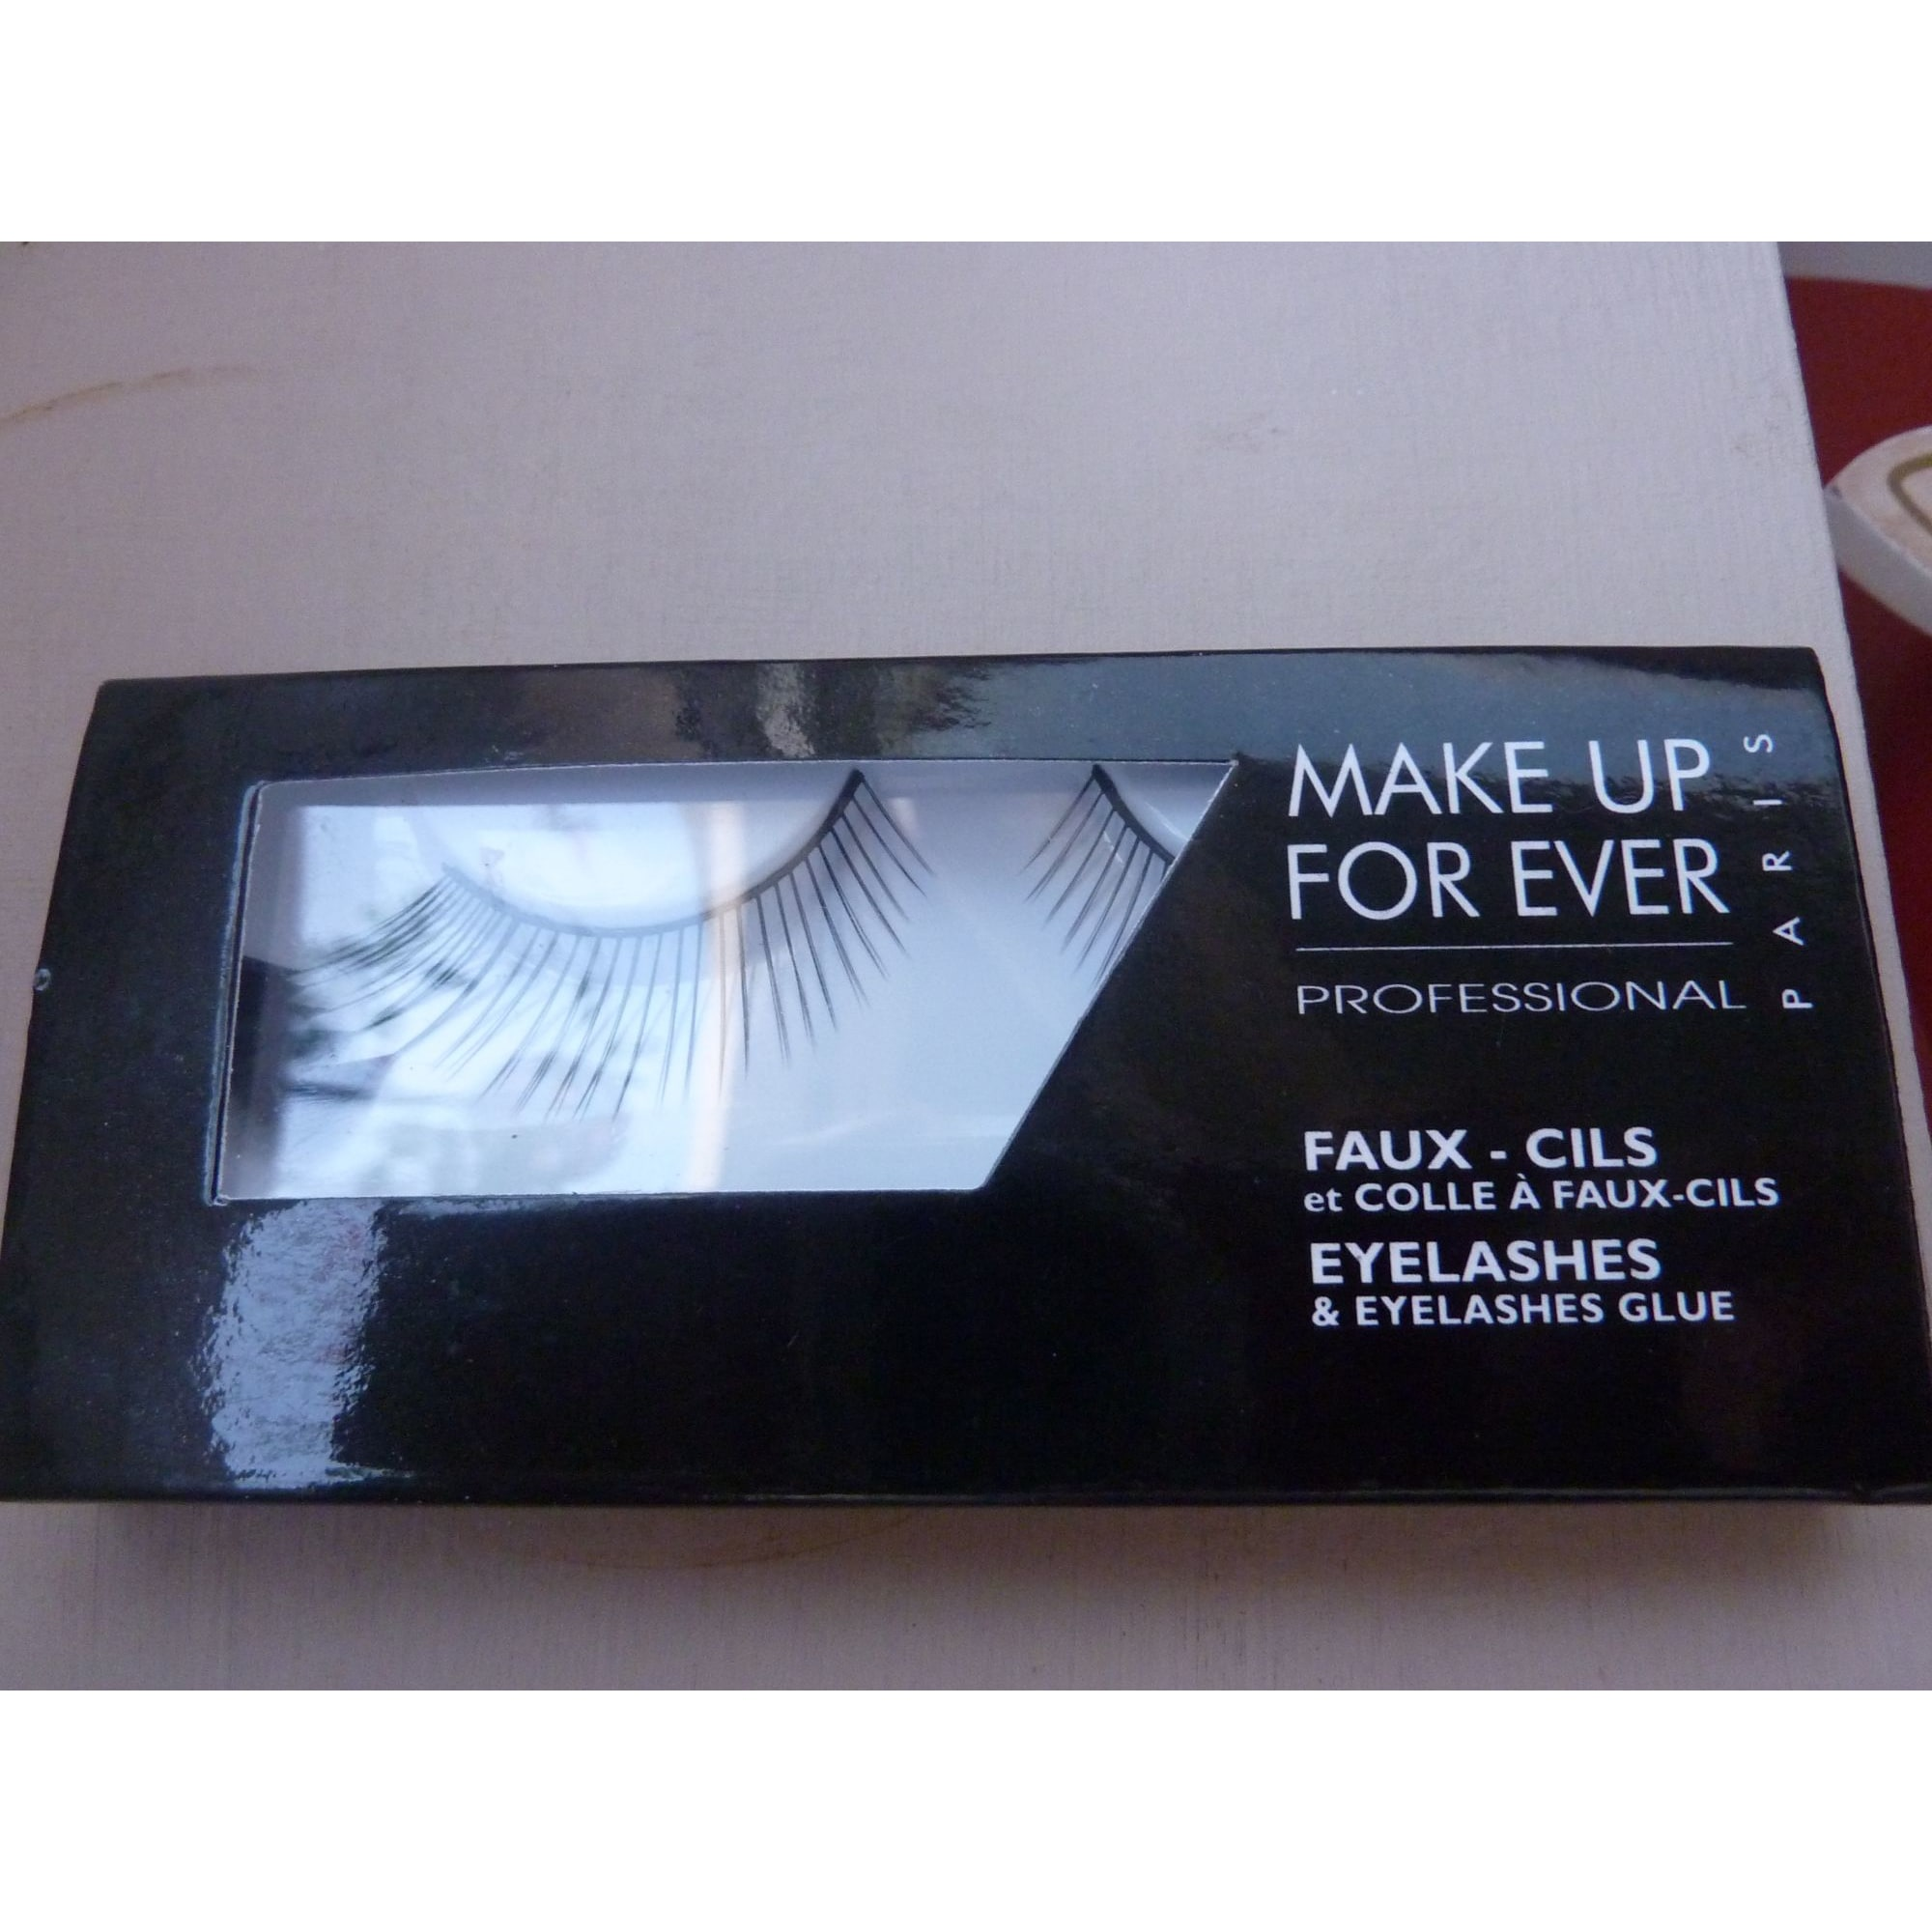 Kit de maquillage MAKE UP FOR EVER multicolore